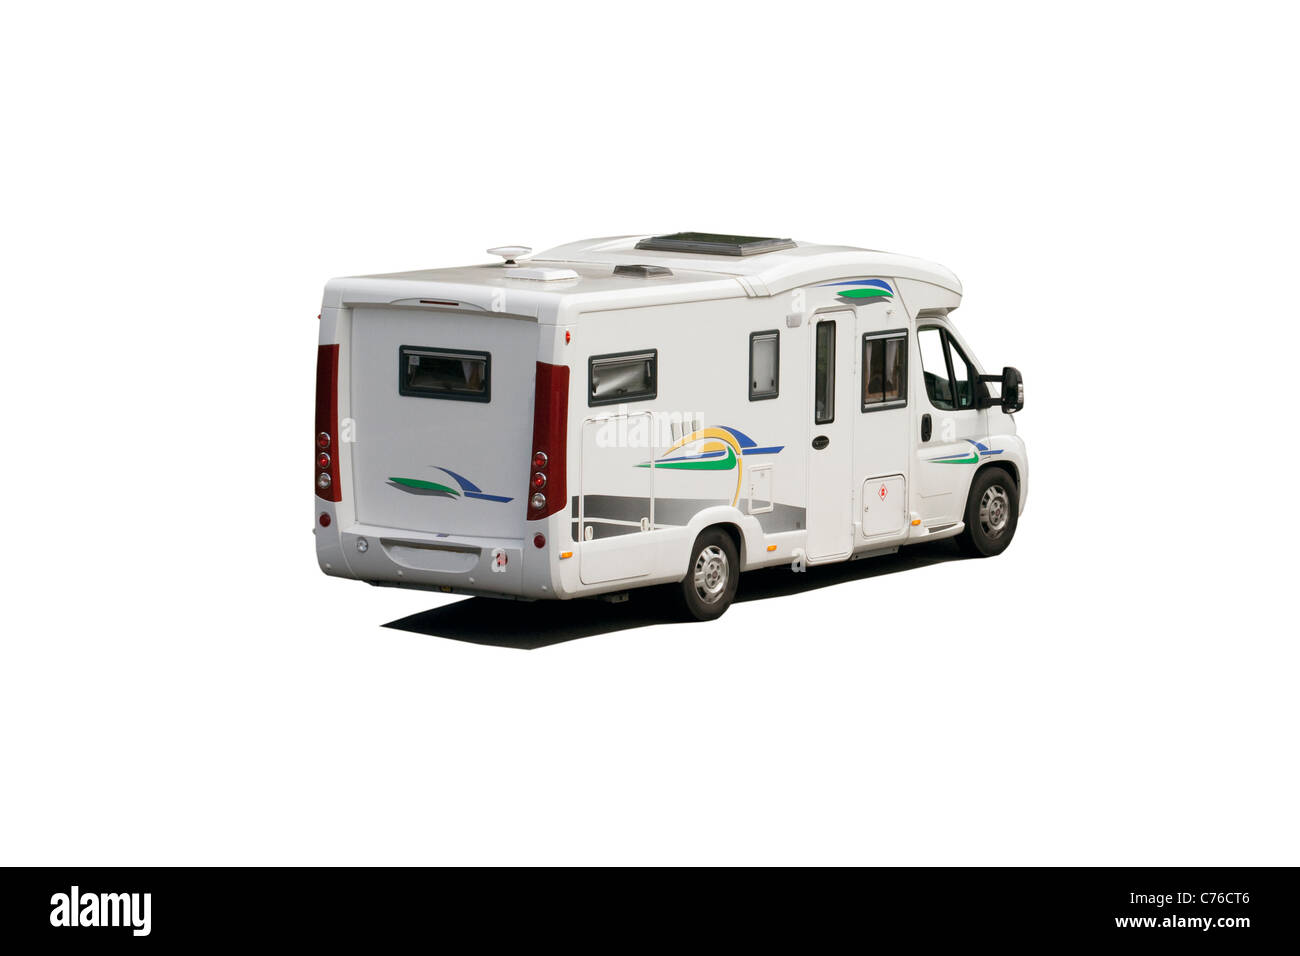 Isolated on white camper van or RV,motorhome - Stock Image